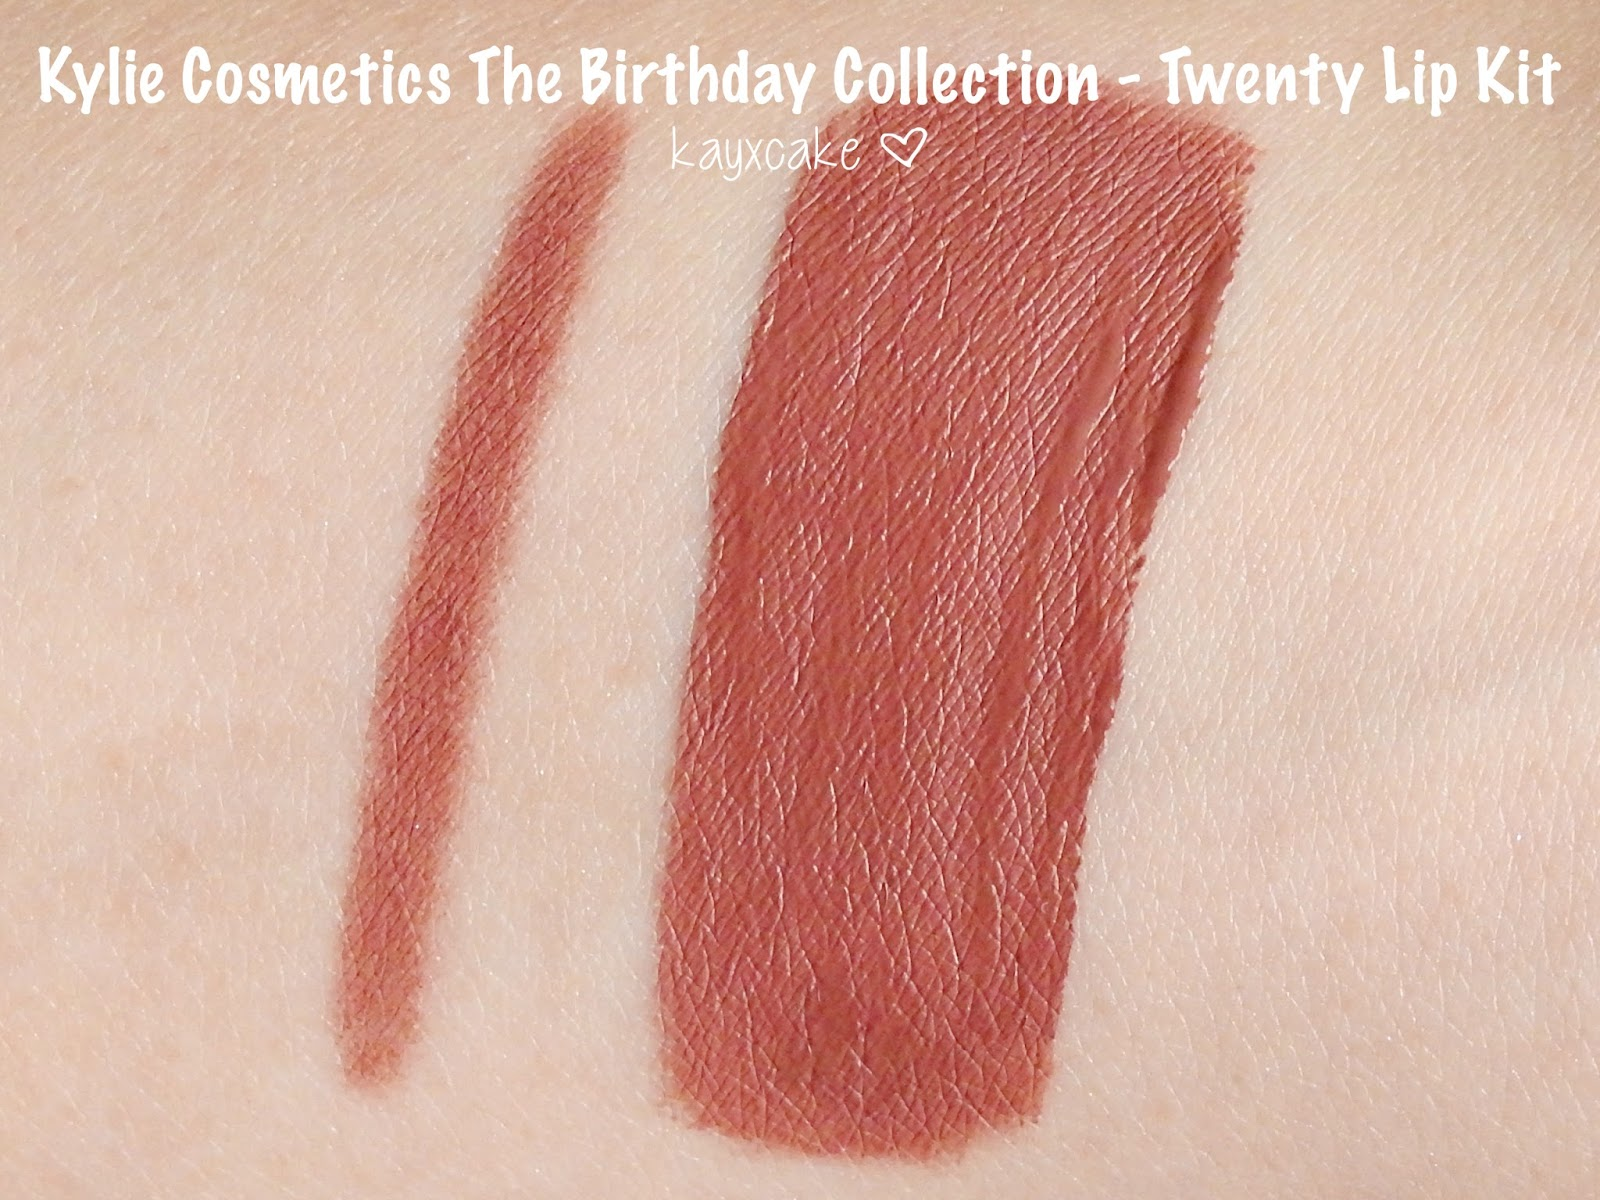 2017 Birthday Collection - I Want It All Palette by Kylie Cosmetics #9